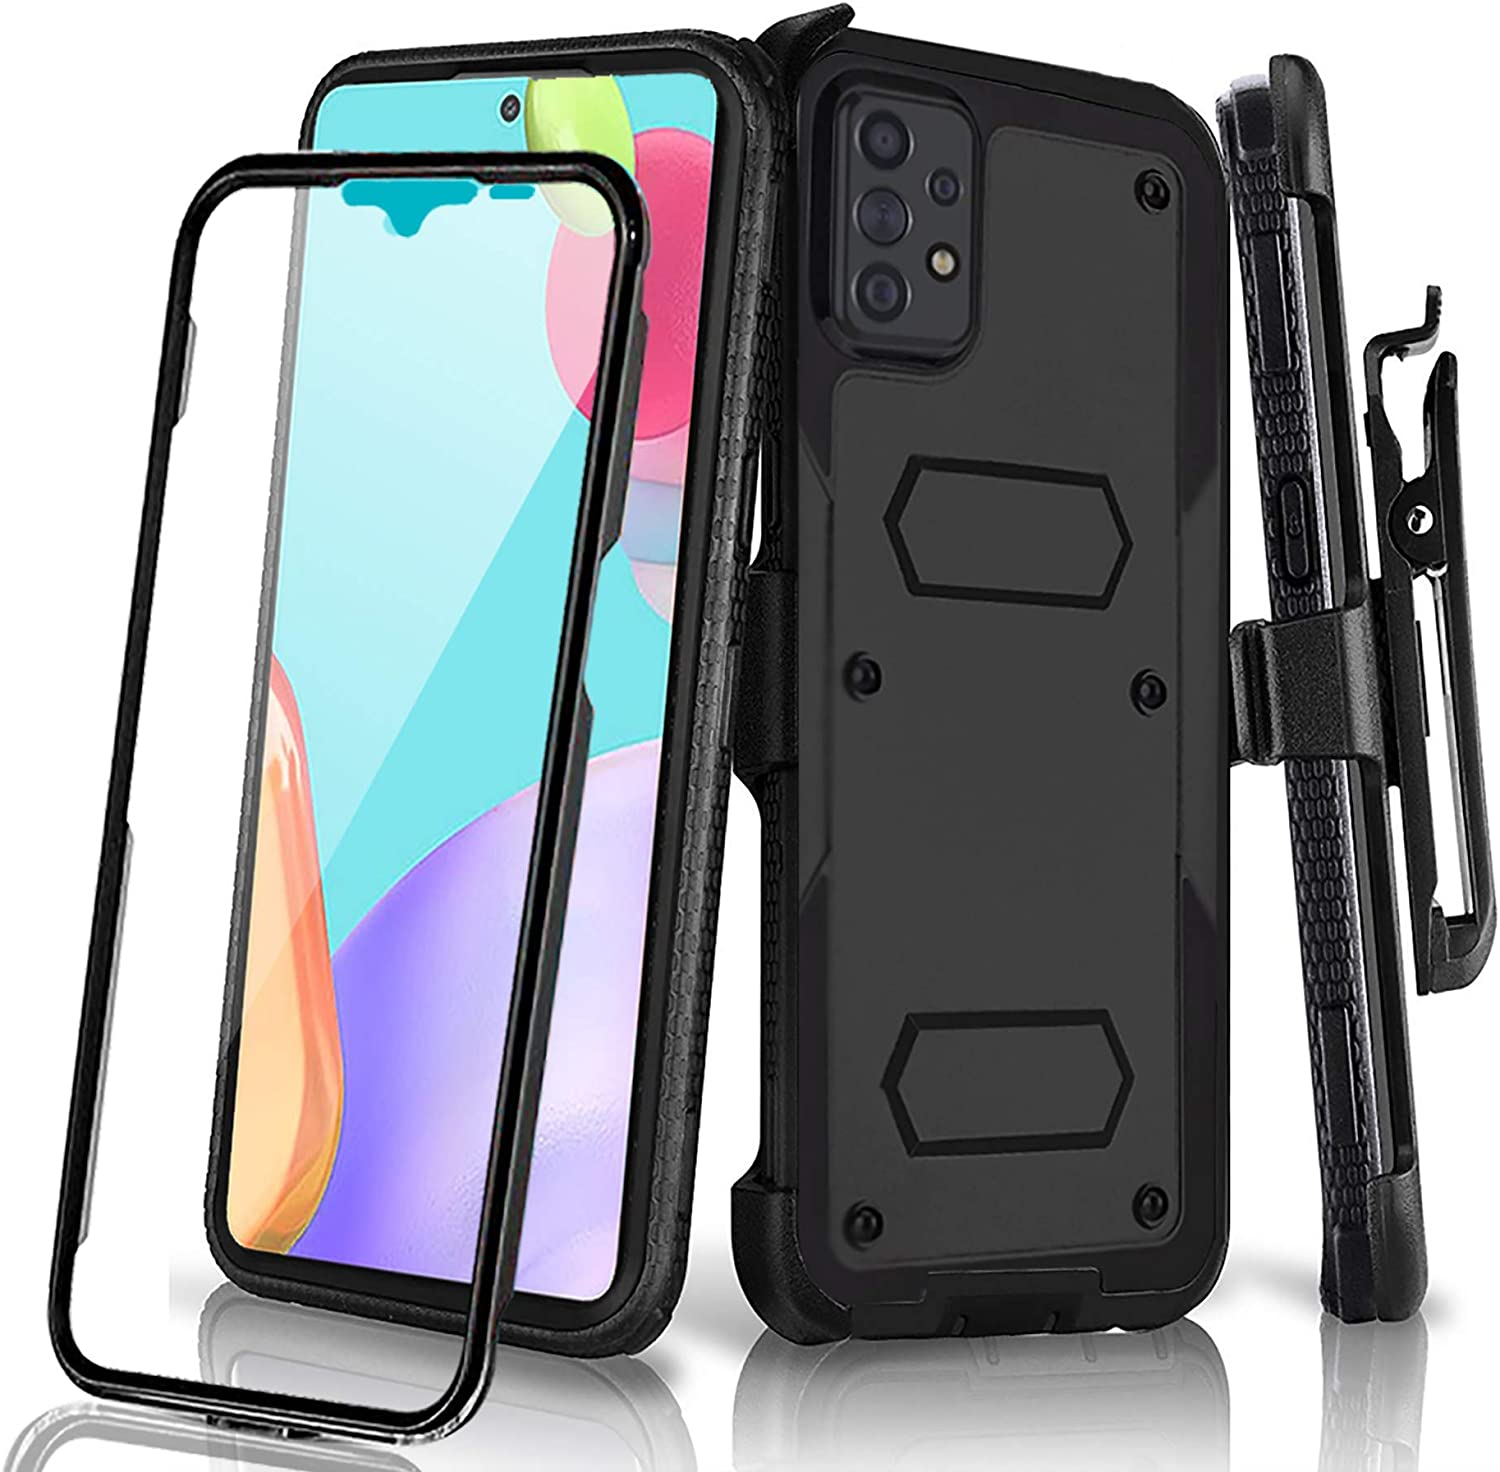 Holster Case for Samsung Galaxy A52 4G / 5G with Swivel Belt Clip, Built-in Screen Protector Heavy Duty Full Body Protection Shockproof Kickstand Cover for Outdoor Sports (Samsung A52)